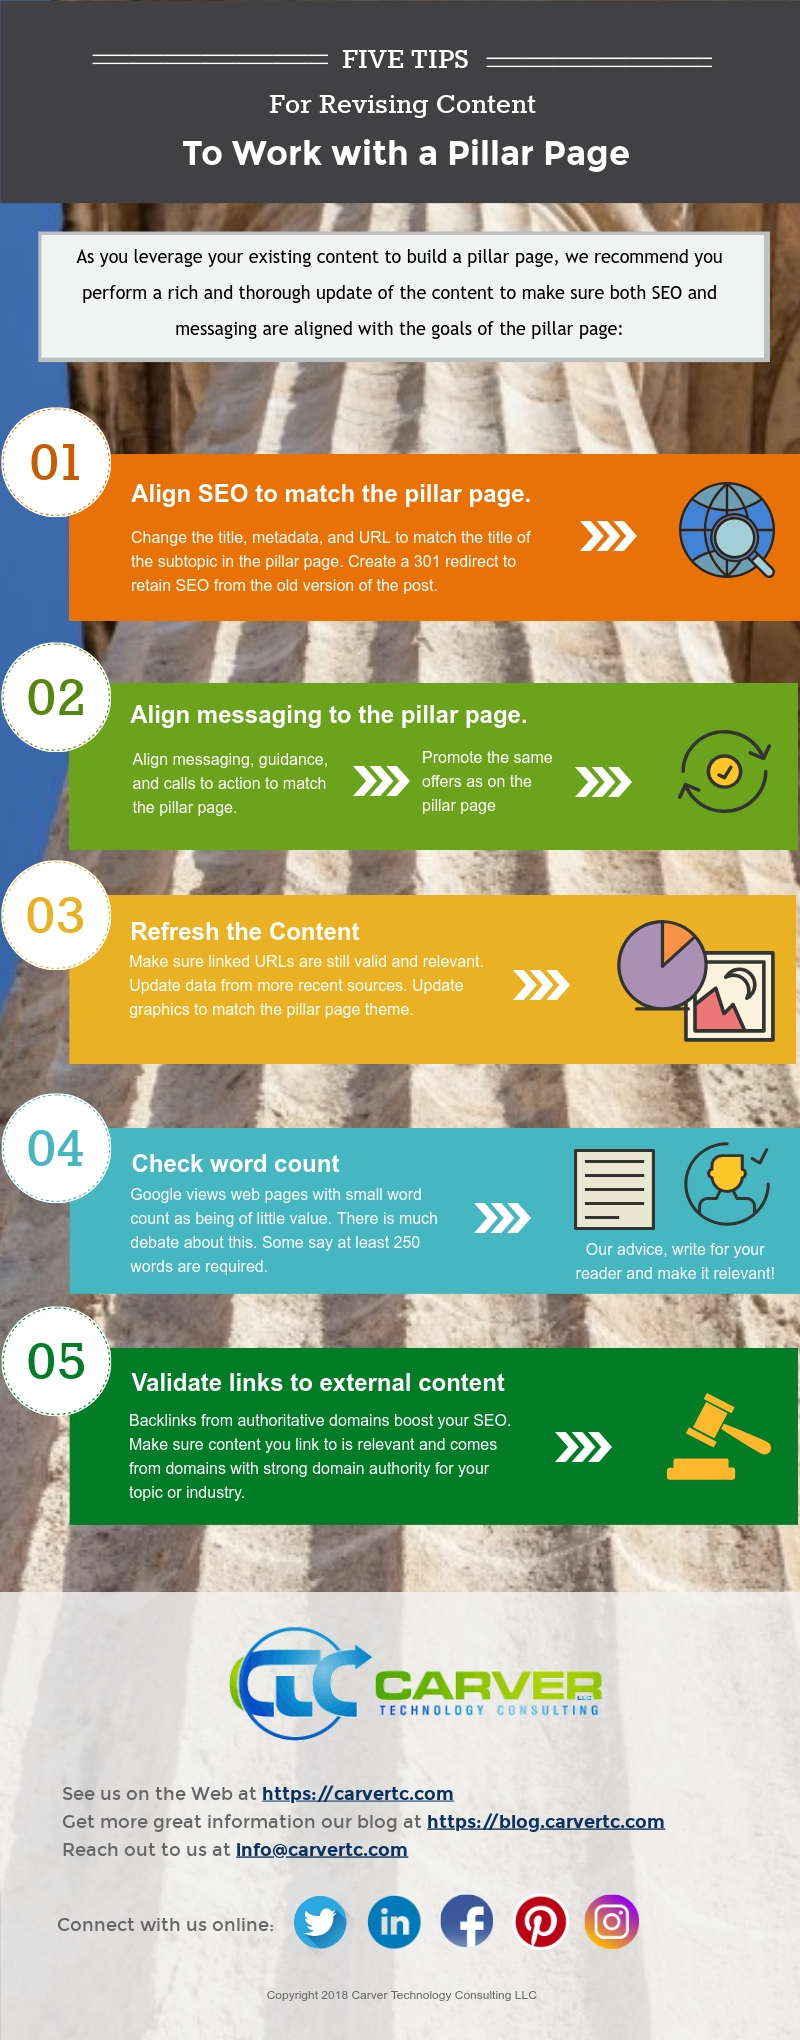 5-Tips-for-Revising-Content-for-use-with-a-Pillar-Page.jpg